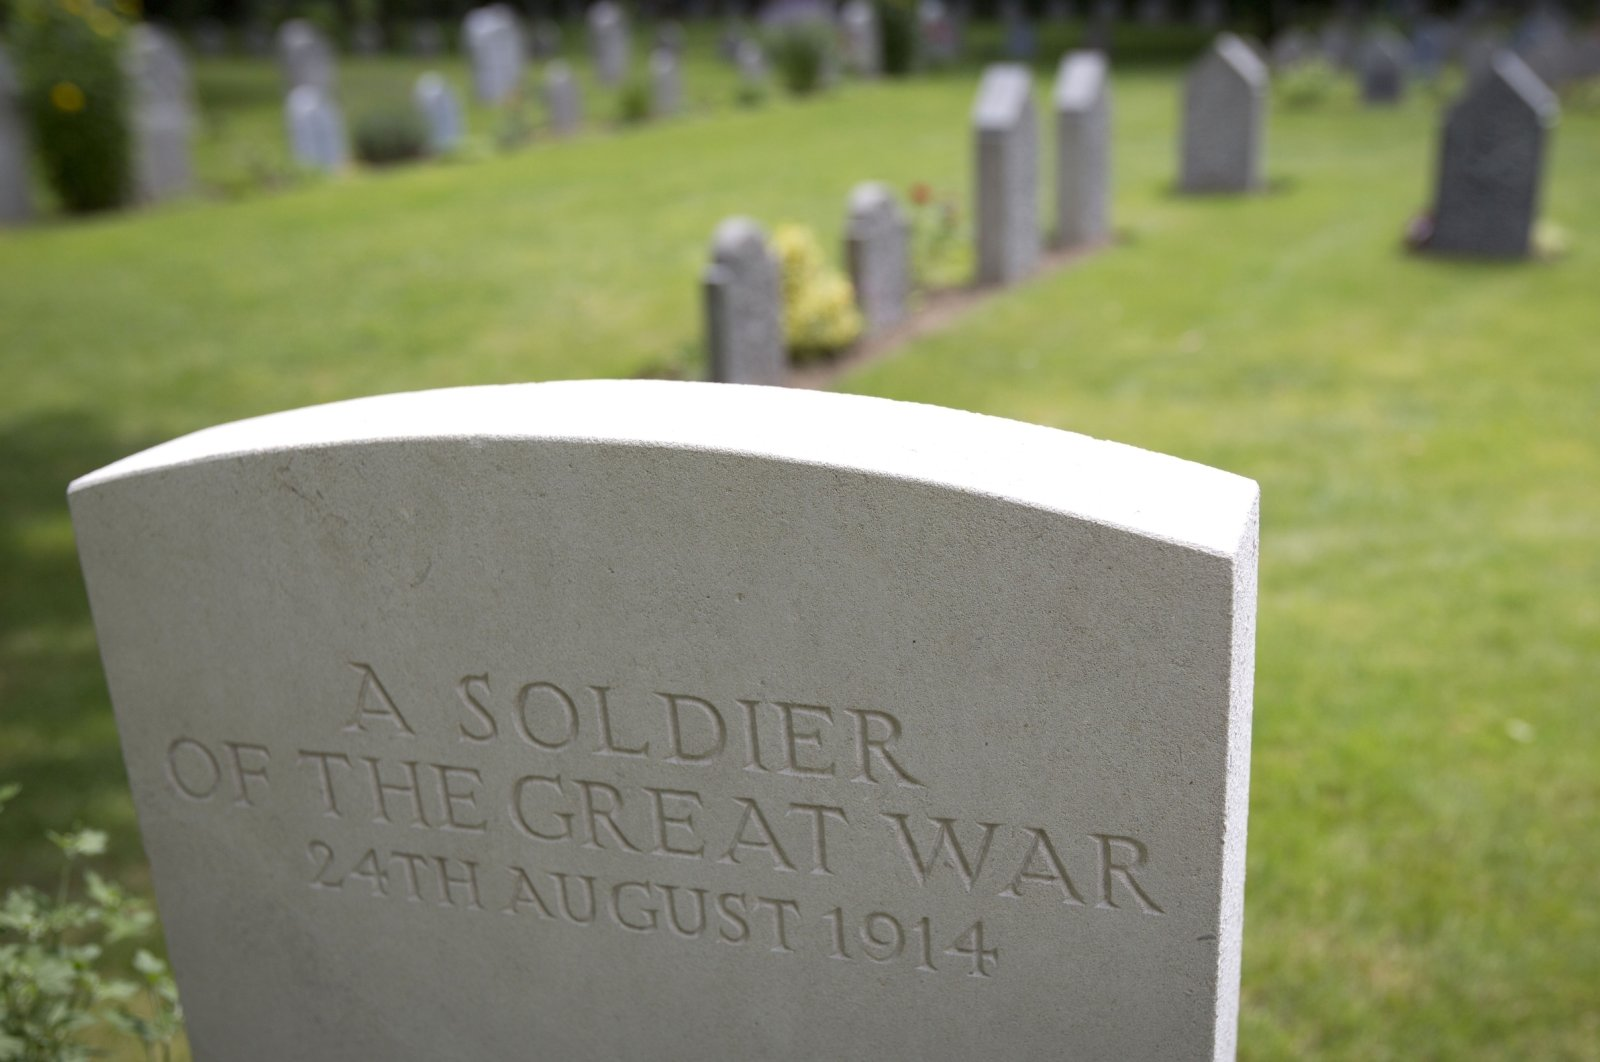 The grave of an unknown Commonwealth soldier from World War I in the foreground and German soldiers' graves in the background, at the St. Symphorien Cemetery near Mons, Belgium, July 26, 2014. (AFP Photo)